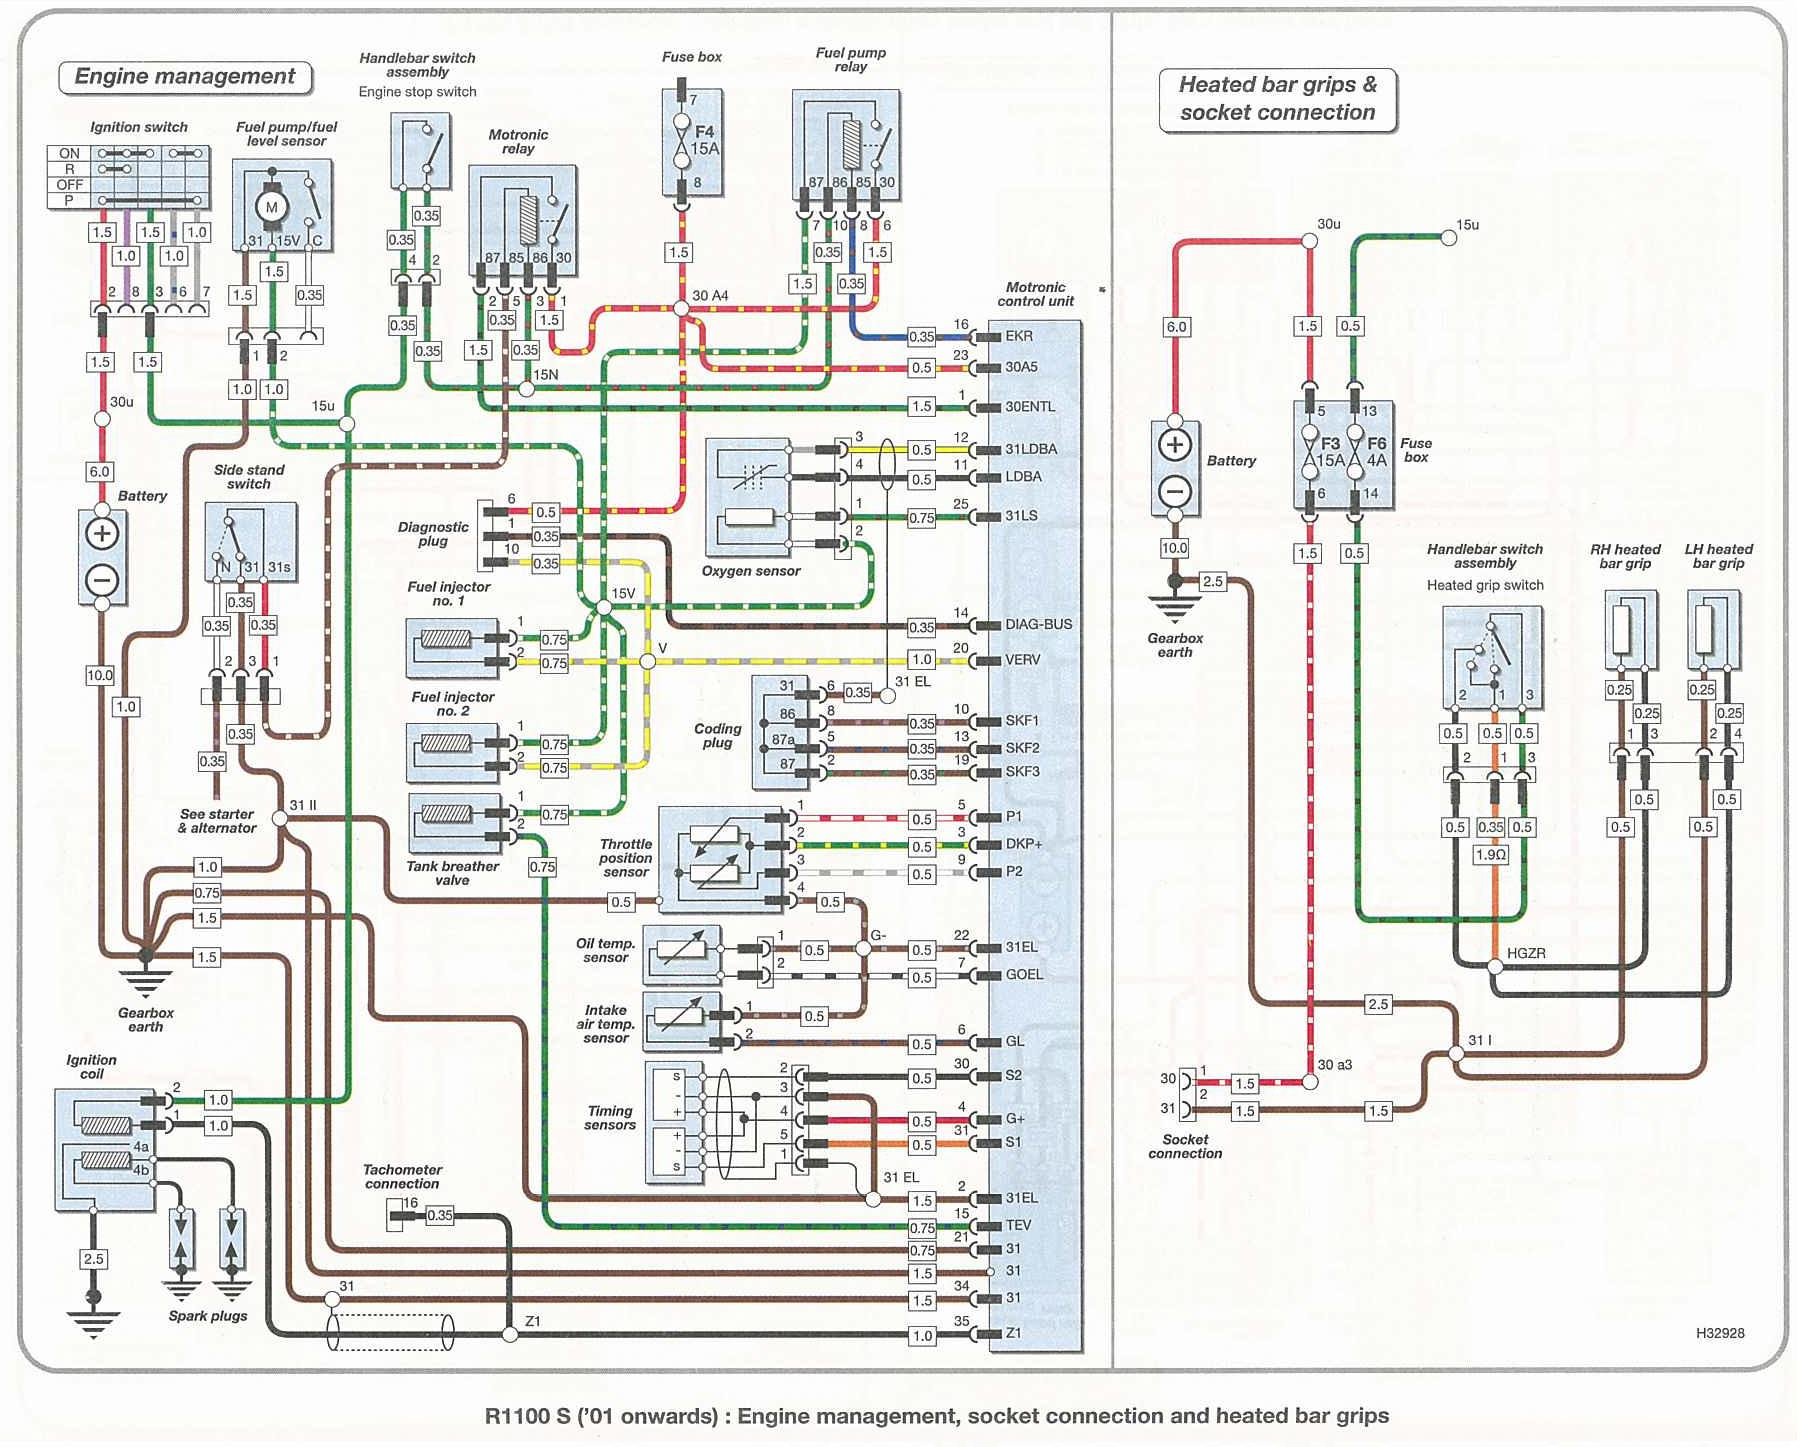 Bmw R1100s Wiring Diagram Bmw Wiring Diagrams Instruction – K1300s Wiring Diagram